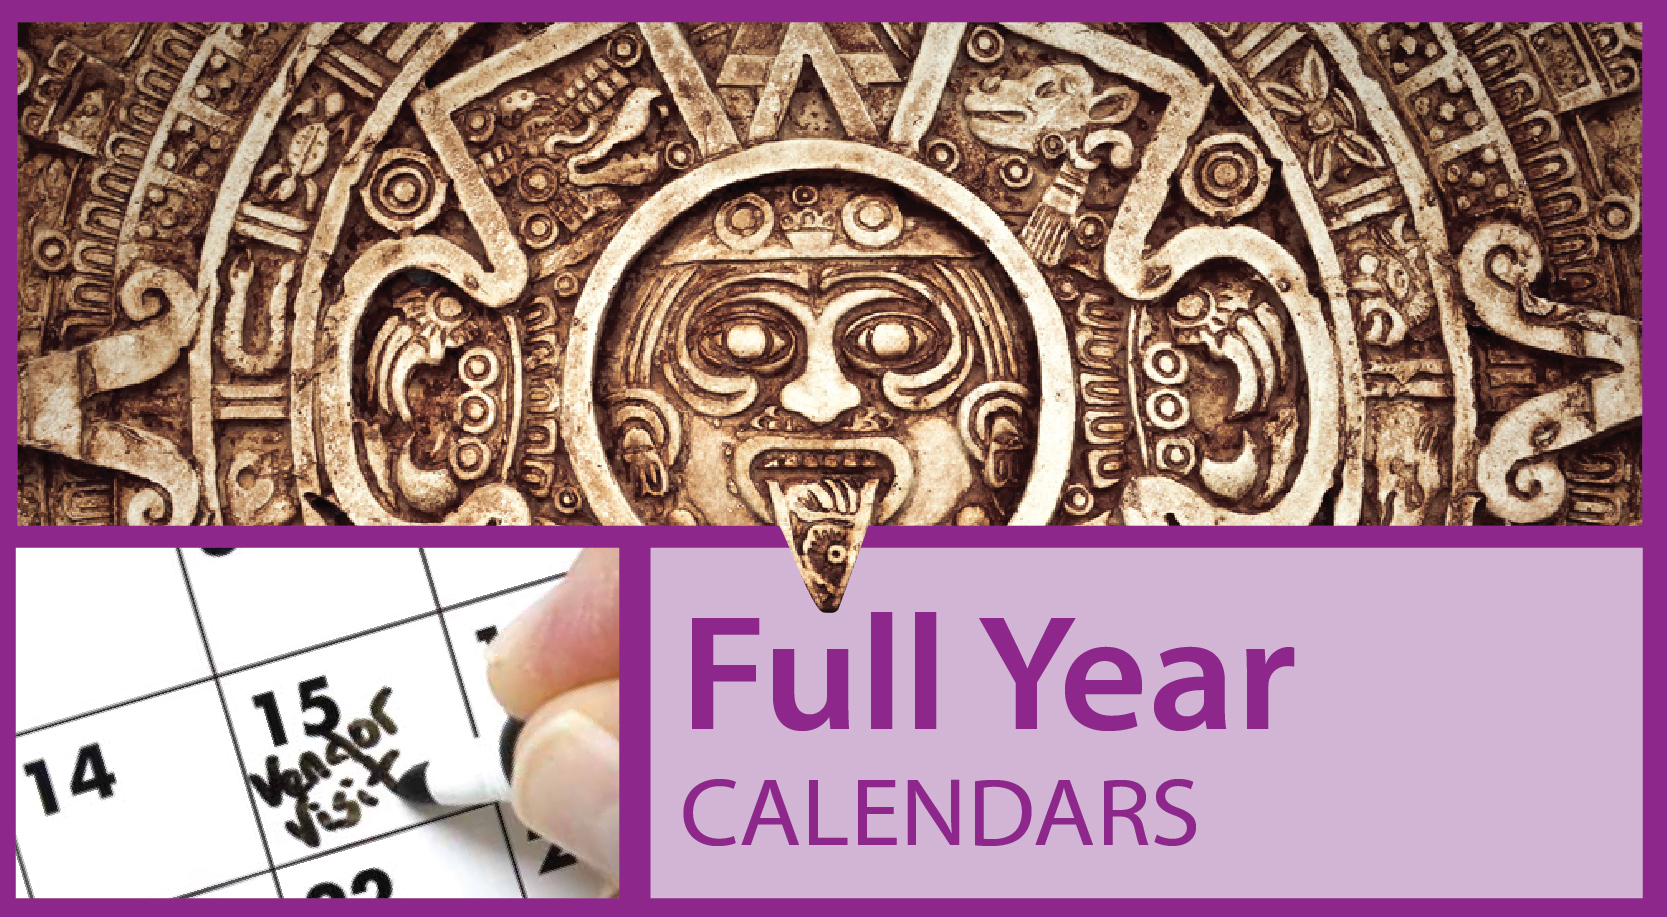 Commercial Full Year View Calendars | Full Year Printed Calendar for Businesses